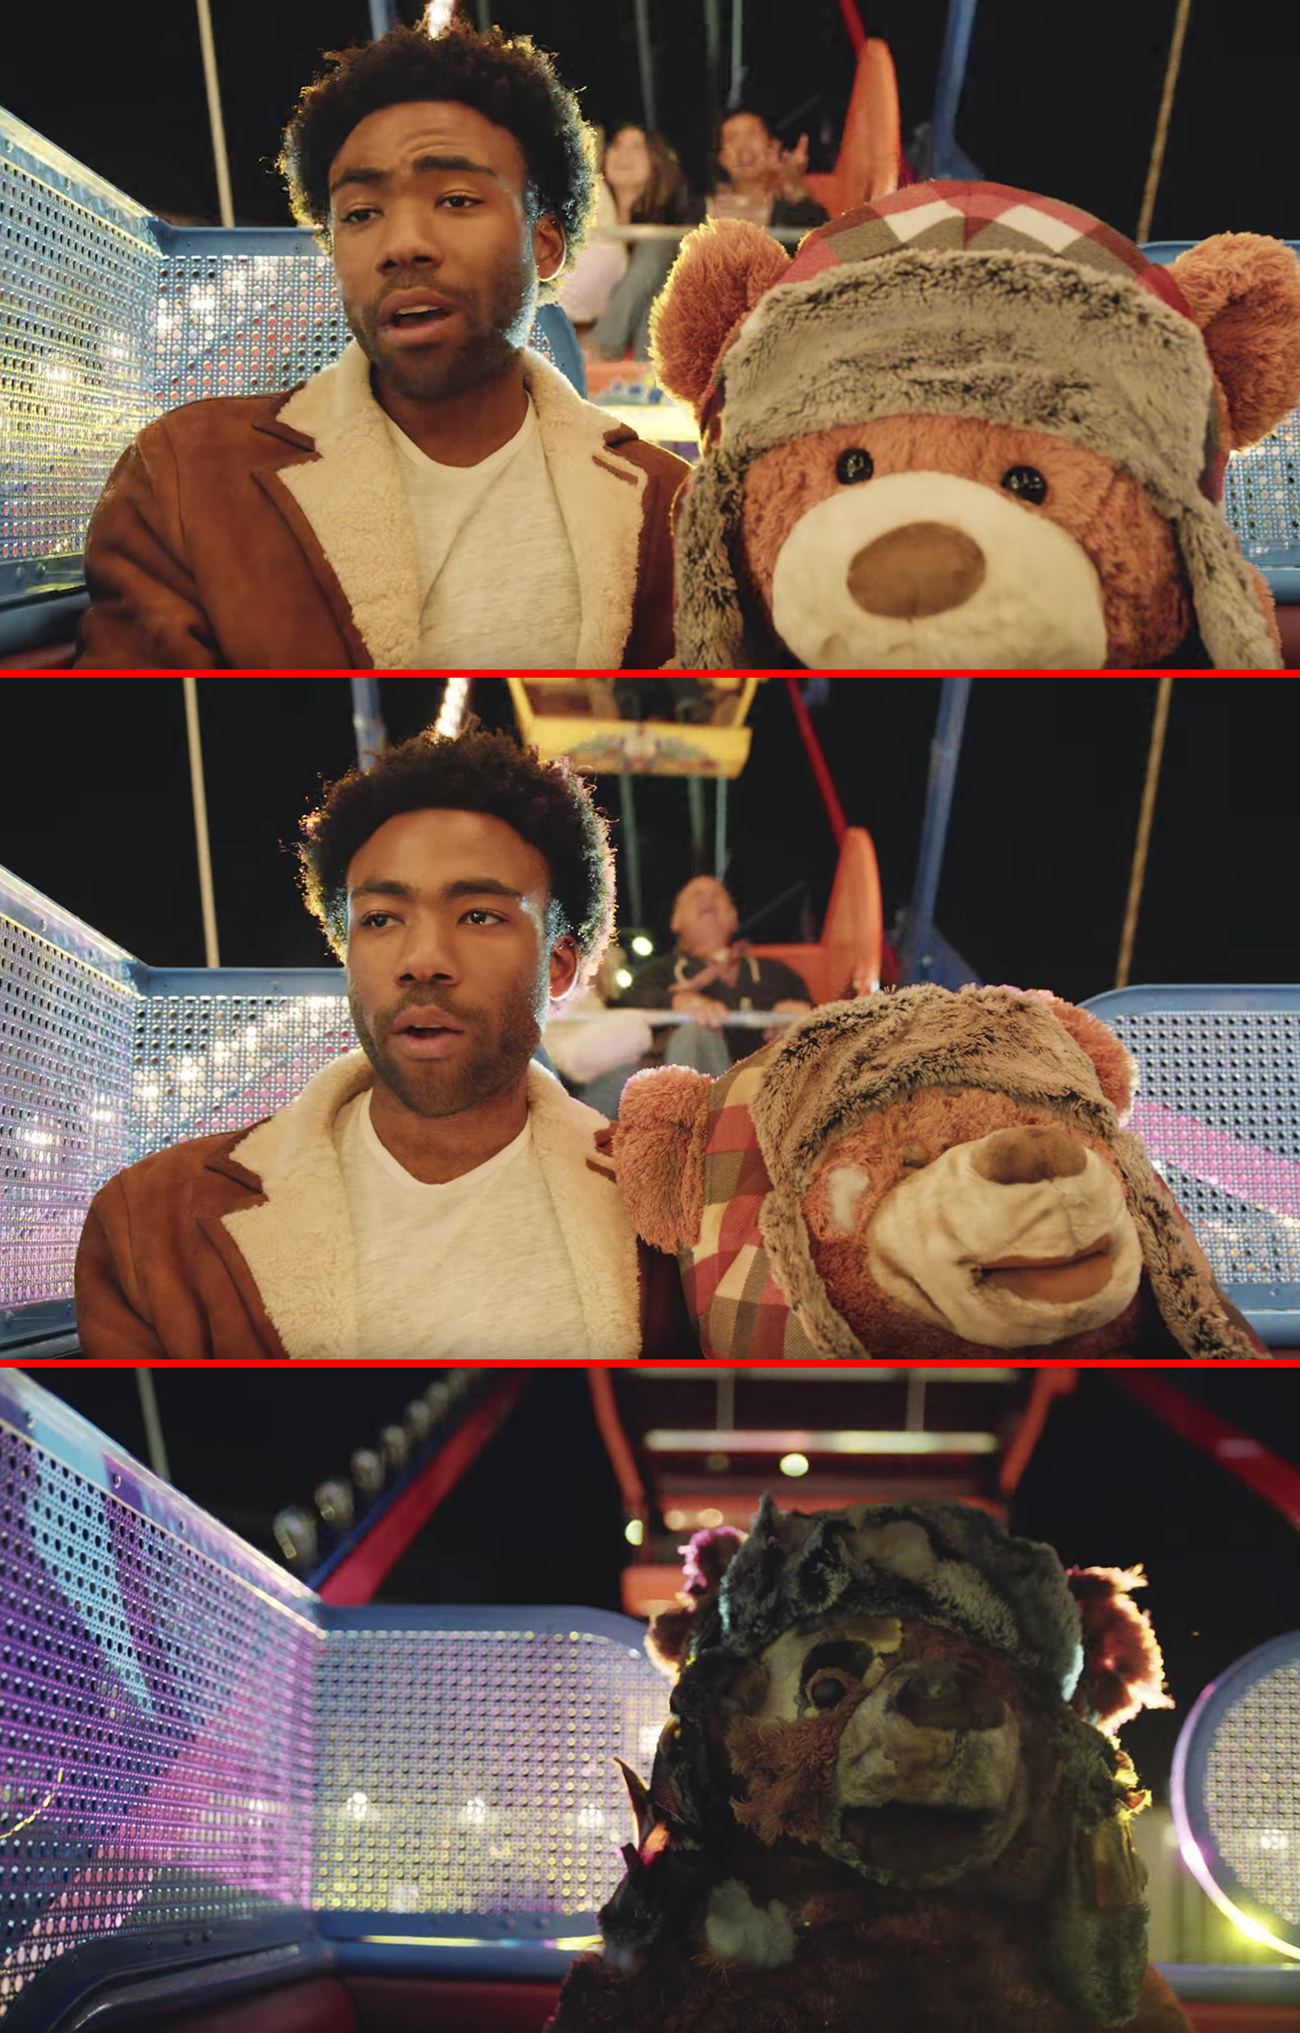 15 Really Cool Details In Childish Gambino Videos That You May Not Have Noticed Before